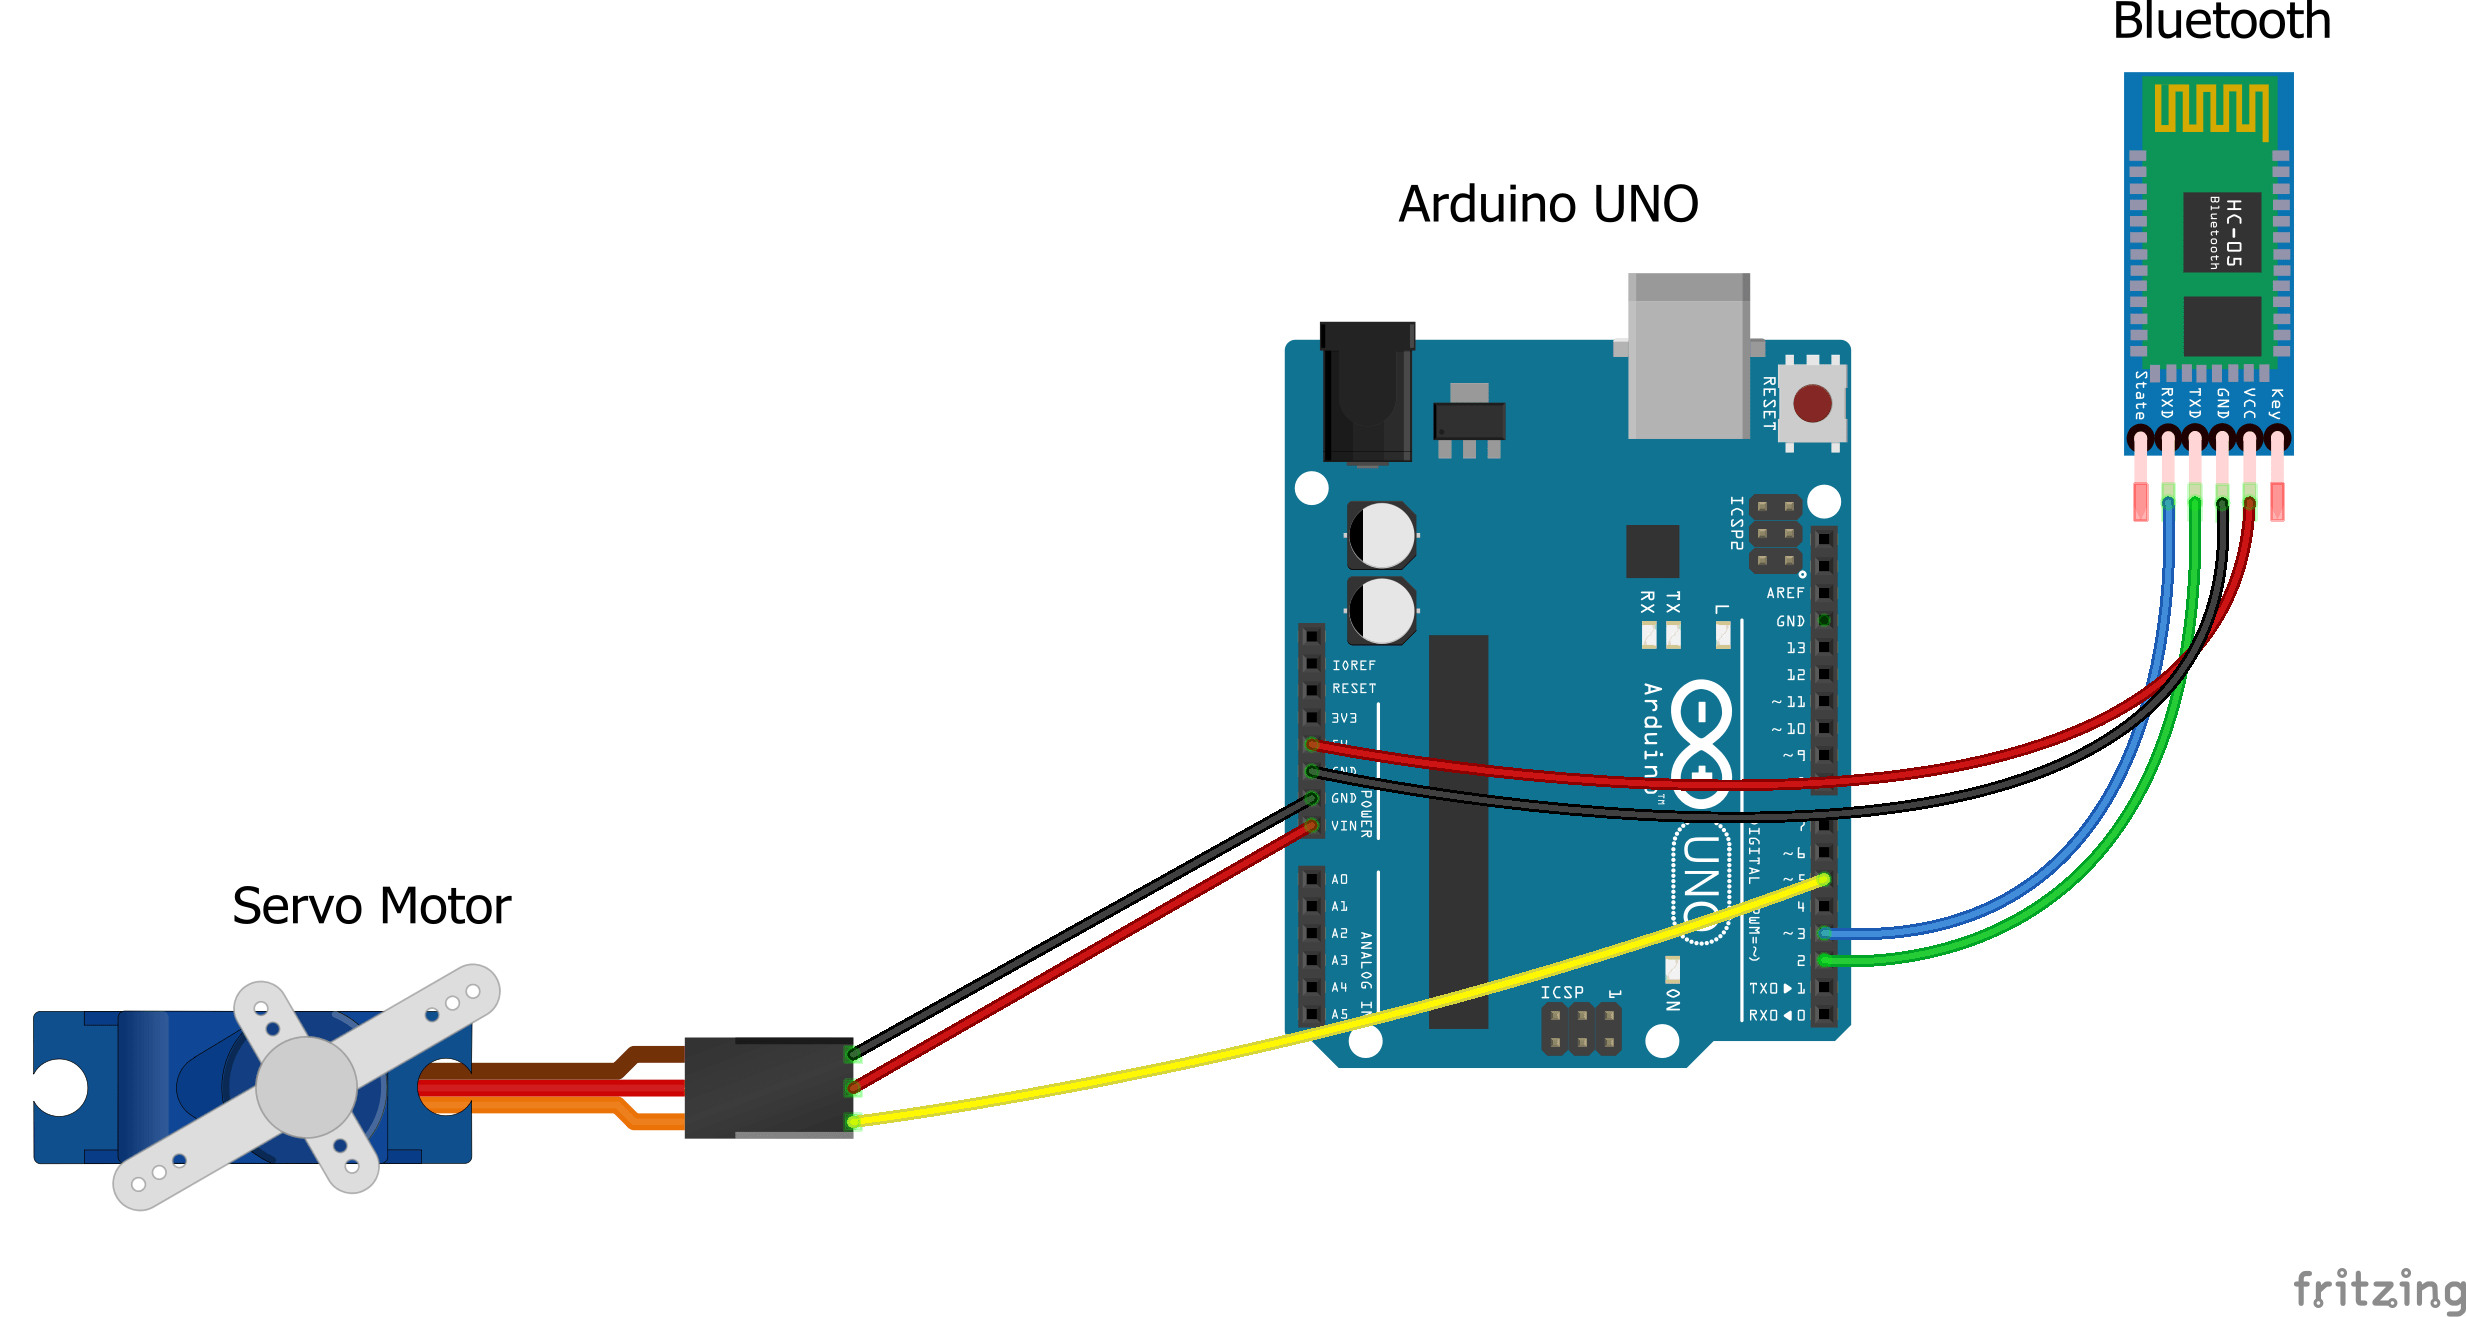 Interface Dabble (Project Making App) with Arduino using